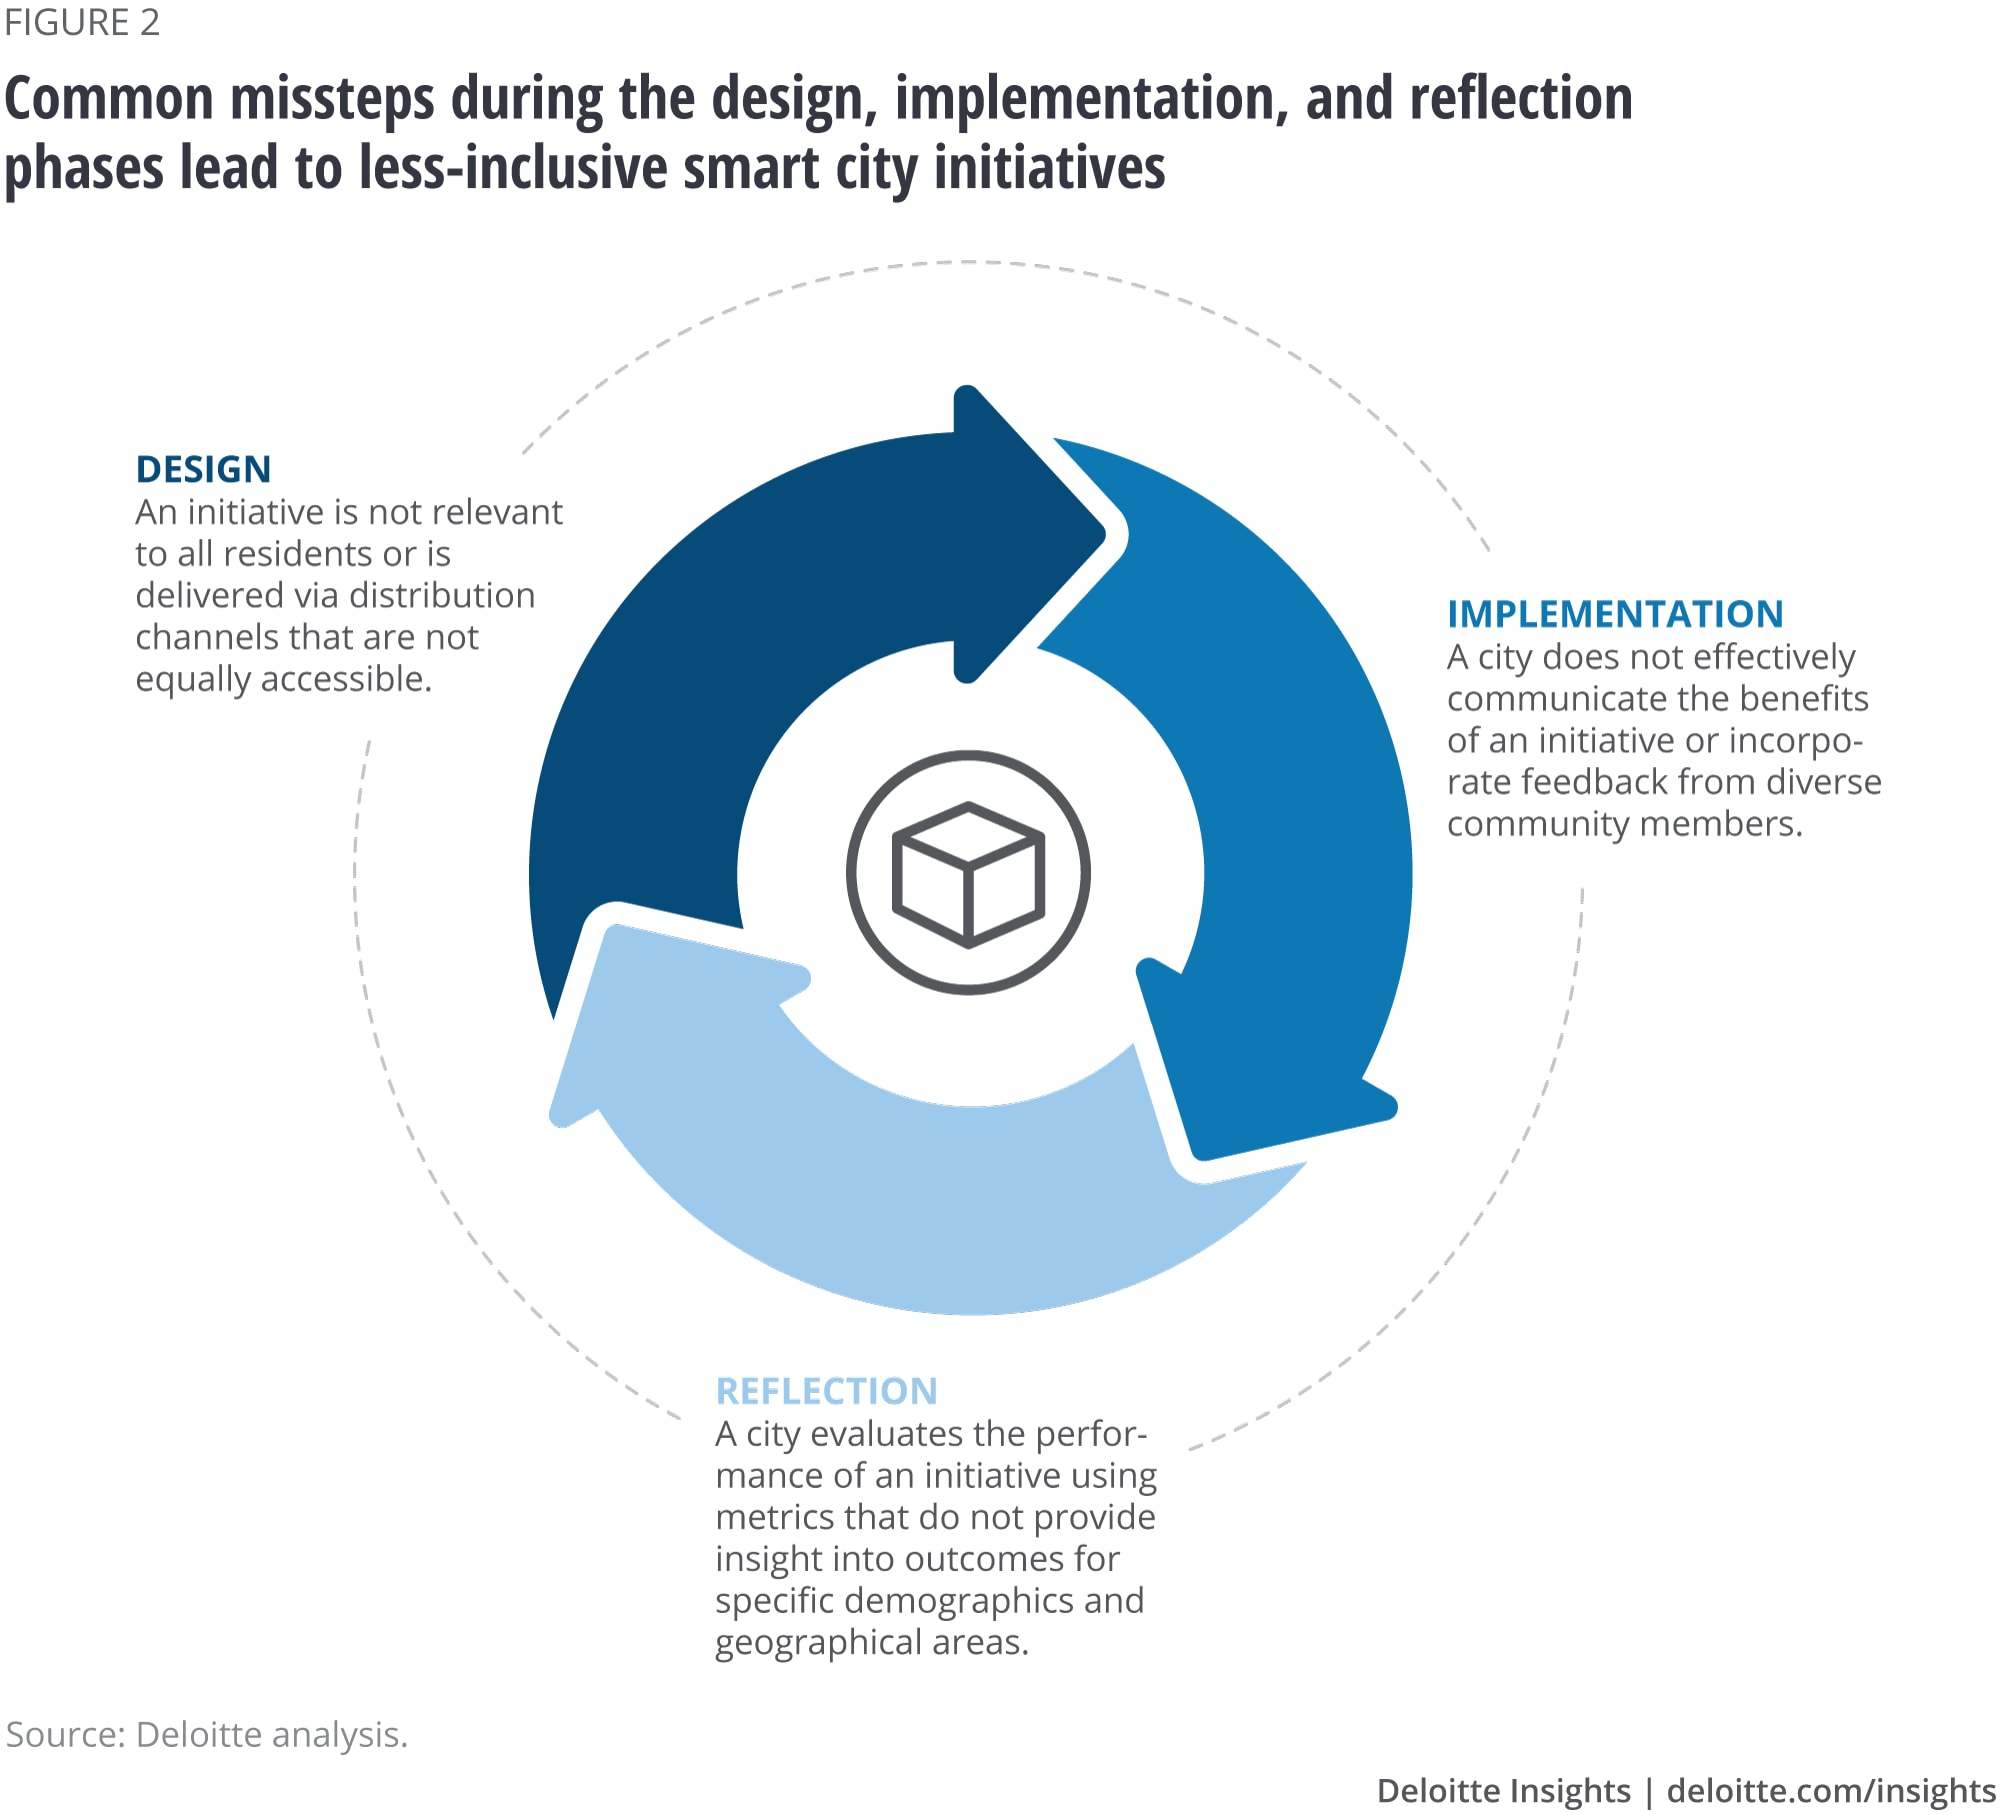 Common missteps during the design, implementation, and reflection phases lead to less-inclusive smart city initiatives